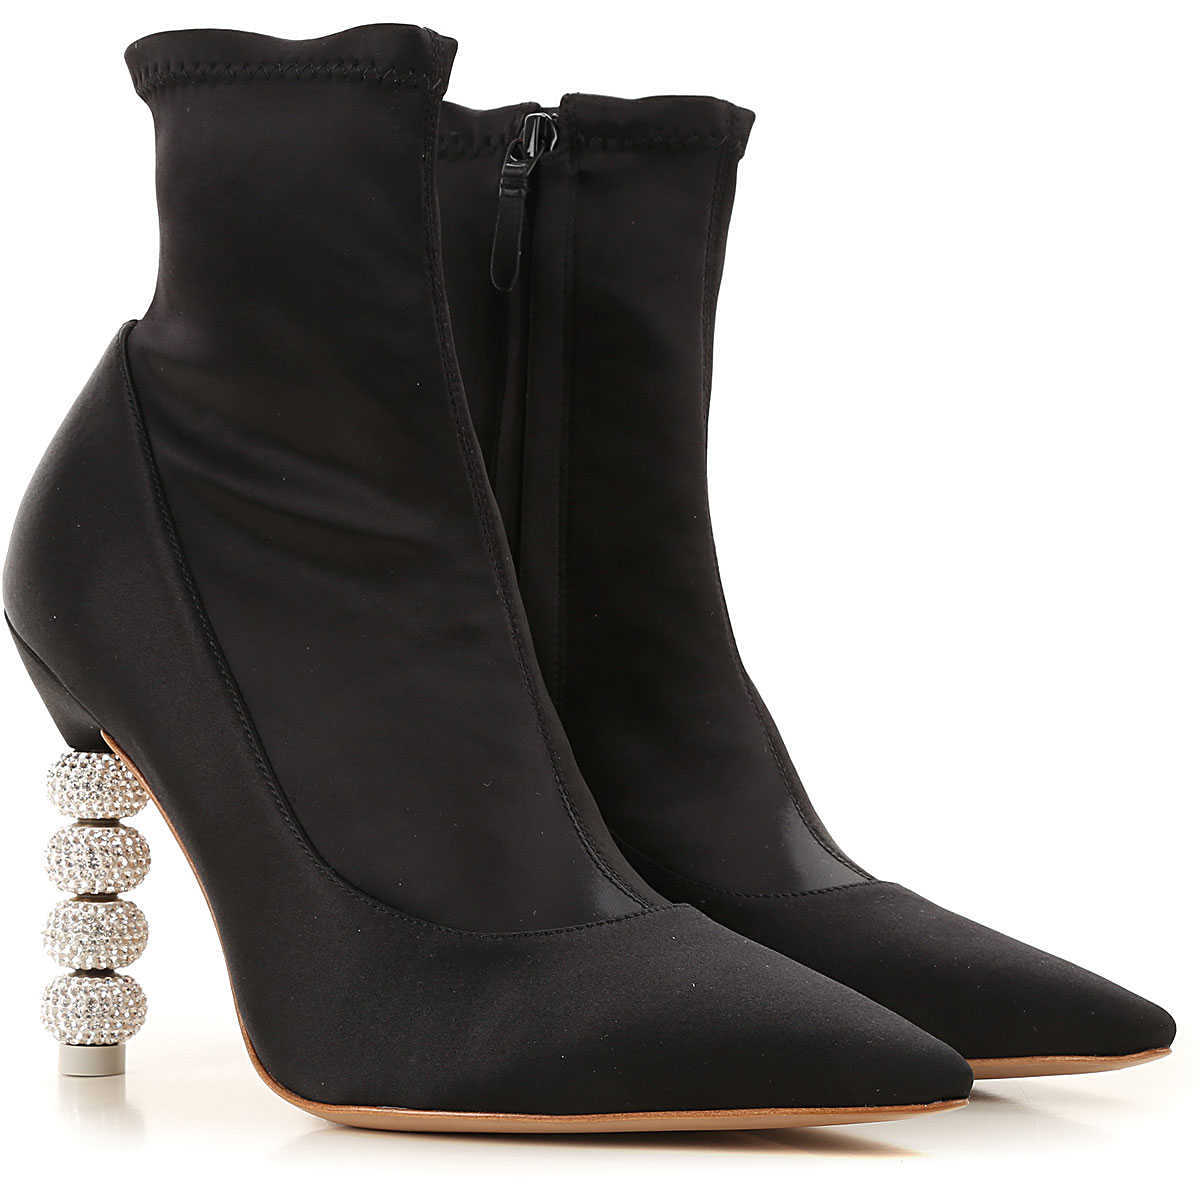 Sophia Webster Boots for Women Booties On Sale in Outlet - GOOFASH